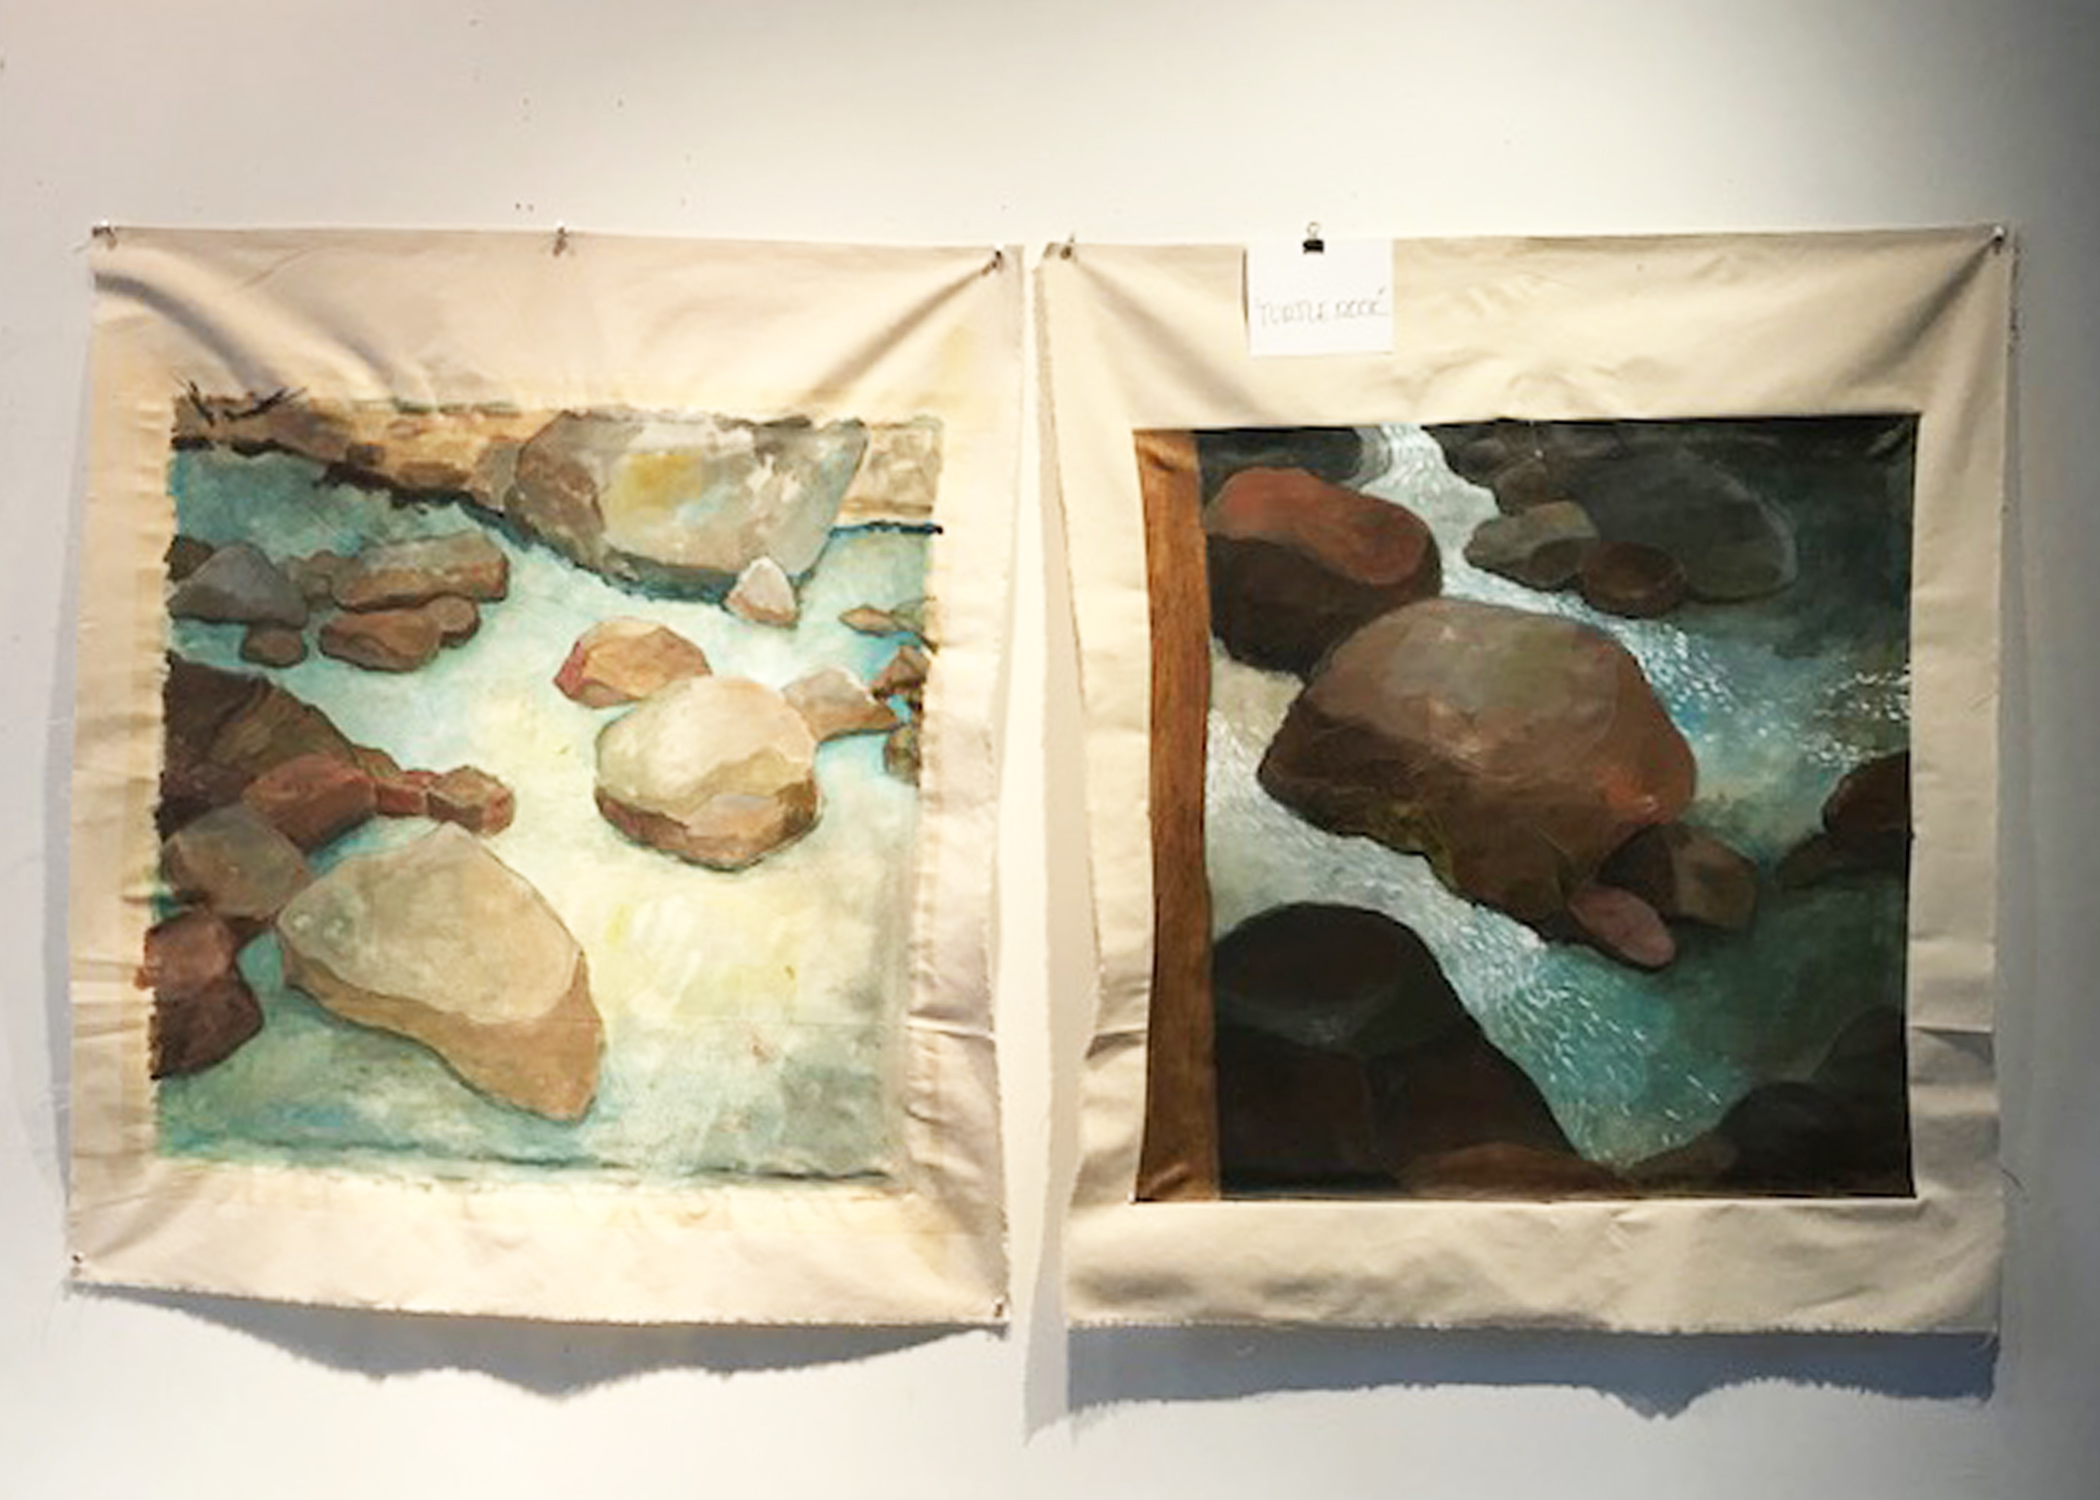 """Still Water"", 29"" x 29 1/2"", (left, in progress); ""Turtle Rock"", 29"" x 29 1/2"" (right, in progress); acrylic and graphite"